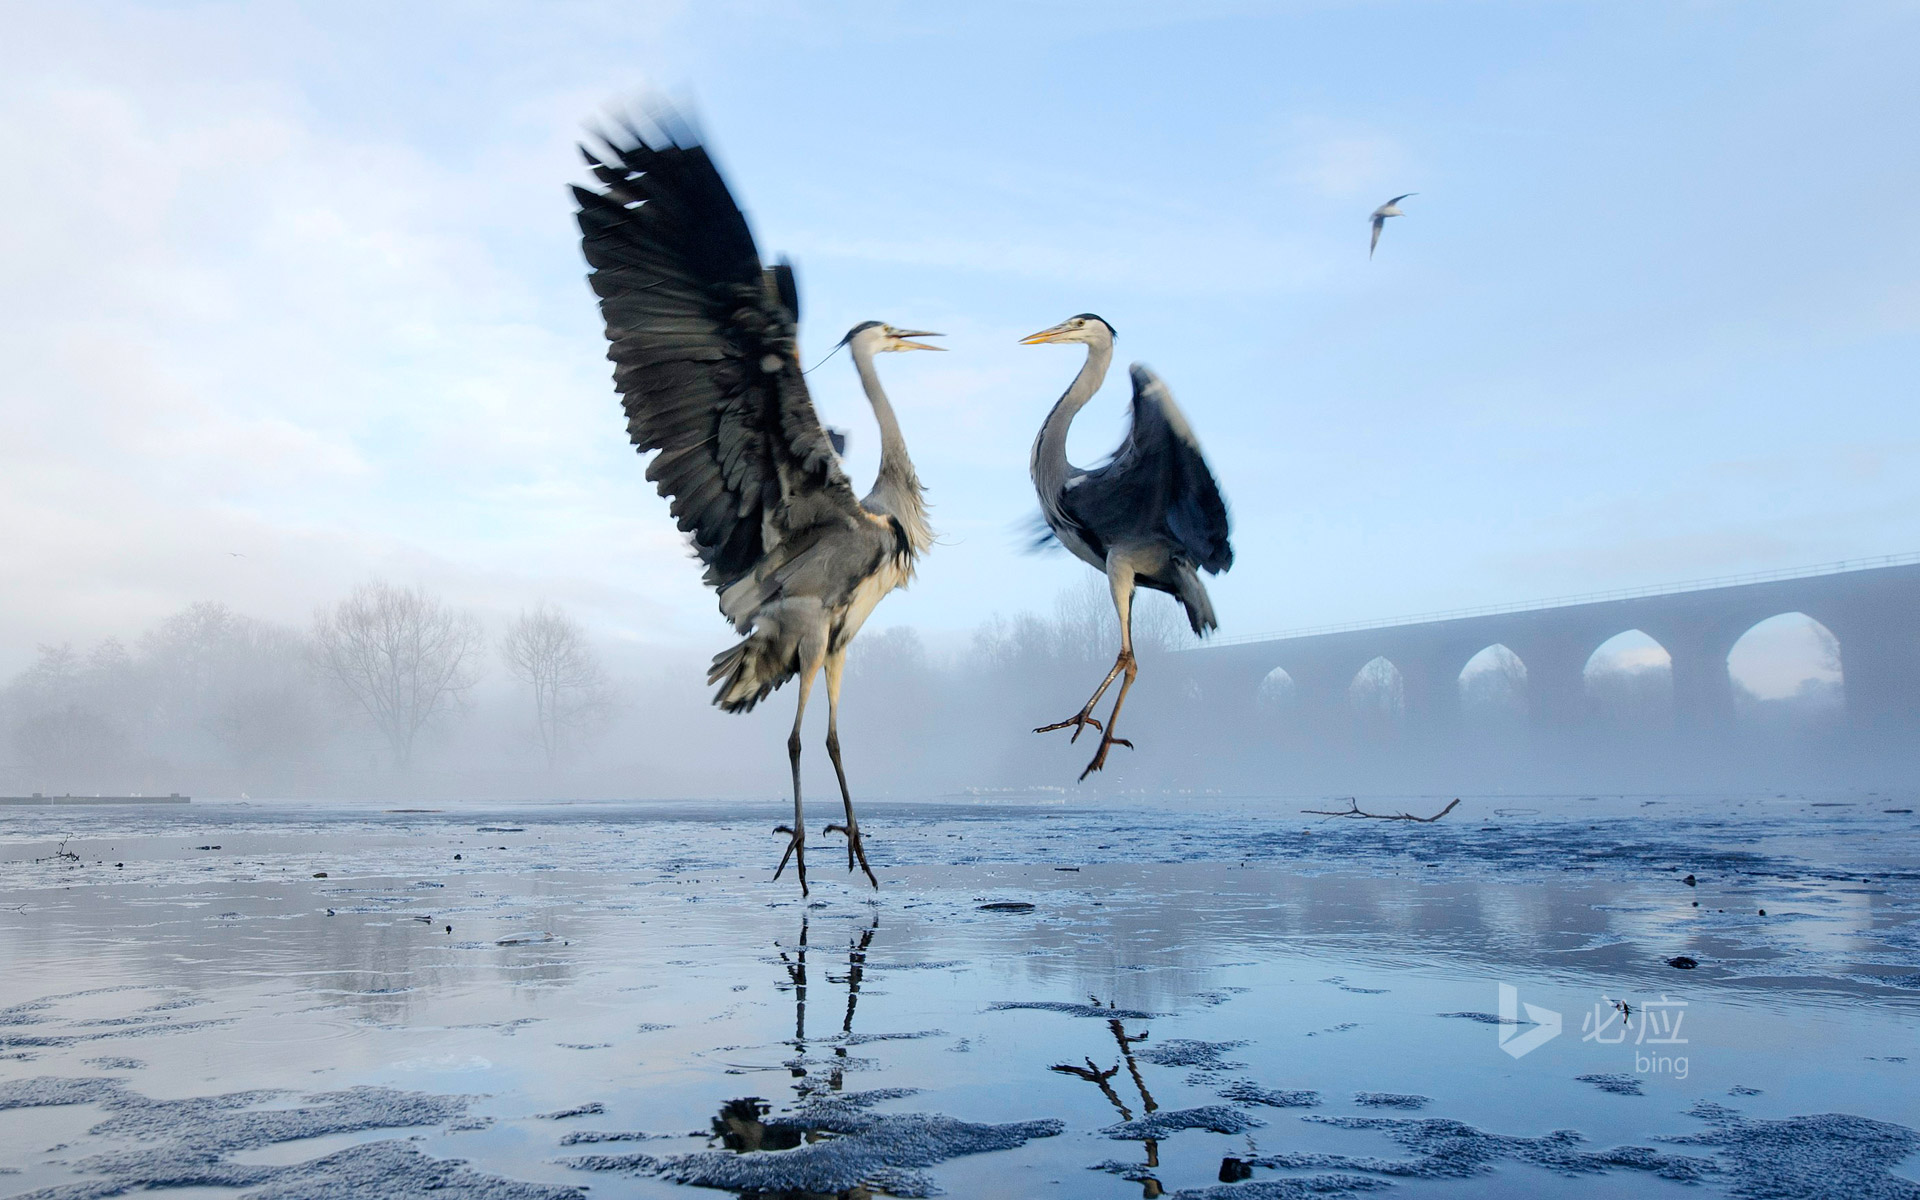 Two herons fighting over fish on the Tam River in Stockport, Greater Manchester